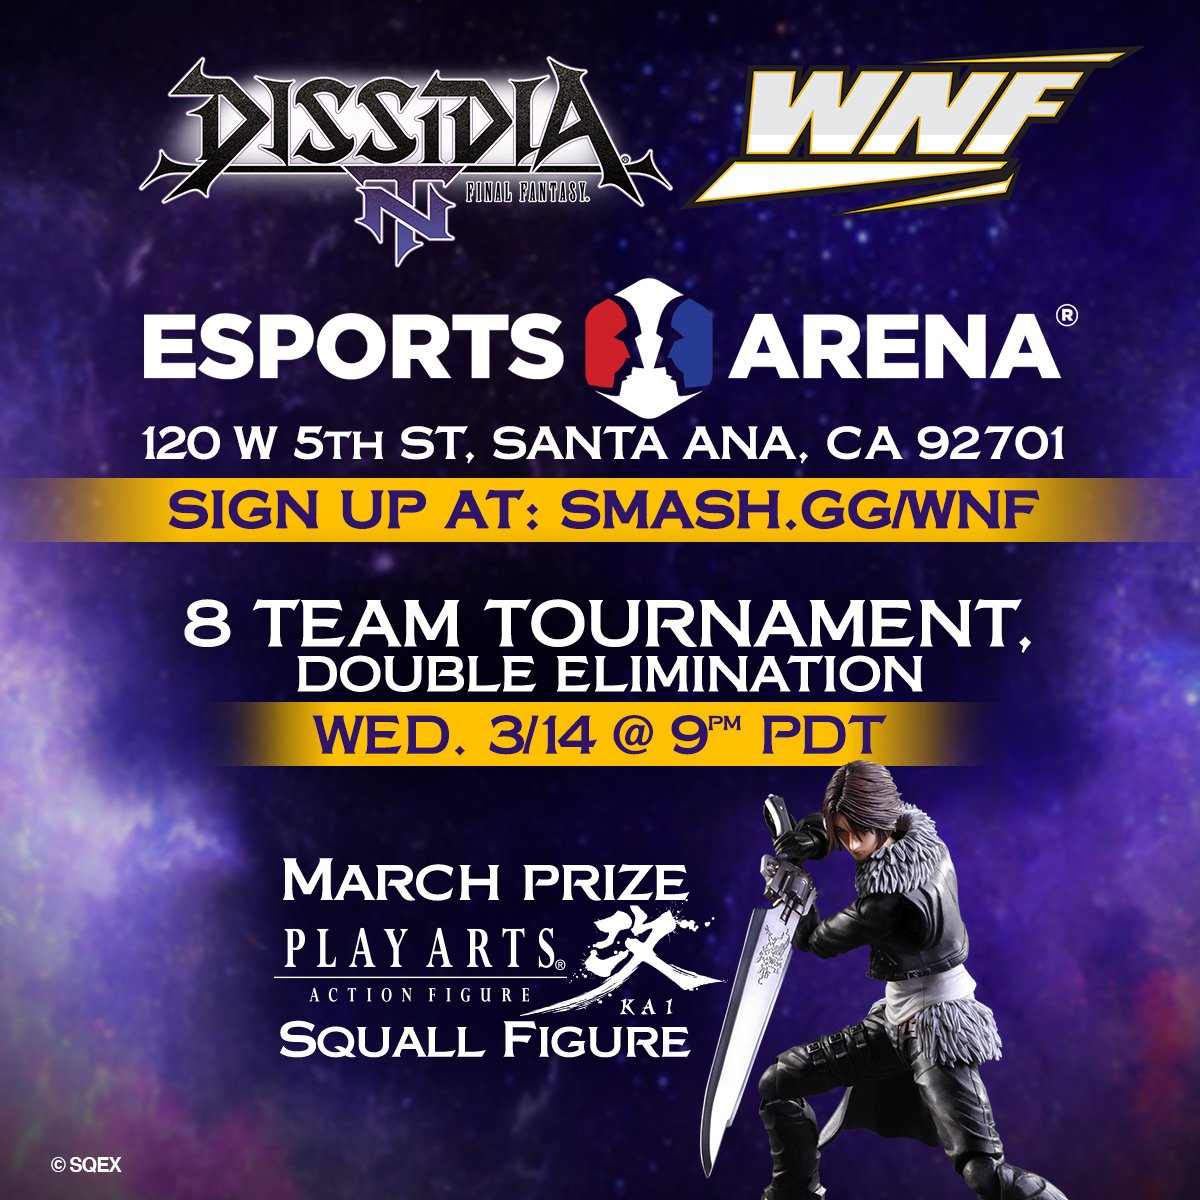 DISSIDIA Master Series announced for #WNF @EsportsArena in Santa Ana, CA. Team up and compete in #DissidiaFFNT for a chance to win cool prizes! For more info, check out: bit.ly/2Ih4xcE 🏆!